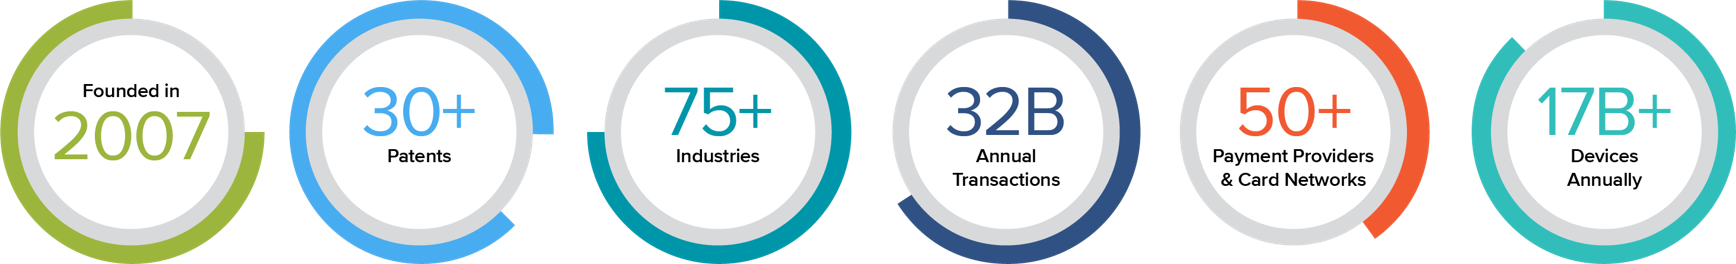 Founded in 2007   30+ Patents   75+ Industries   32B Annual Transactions   50+ Payment Providers & Card Networks   17B+ Devices Annually